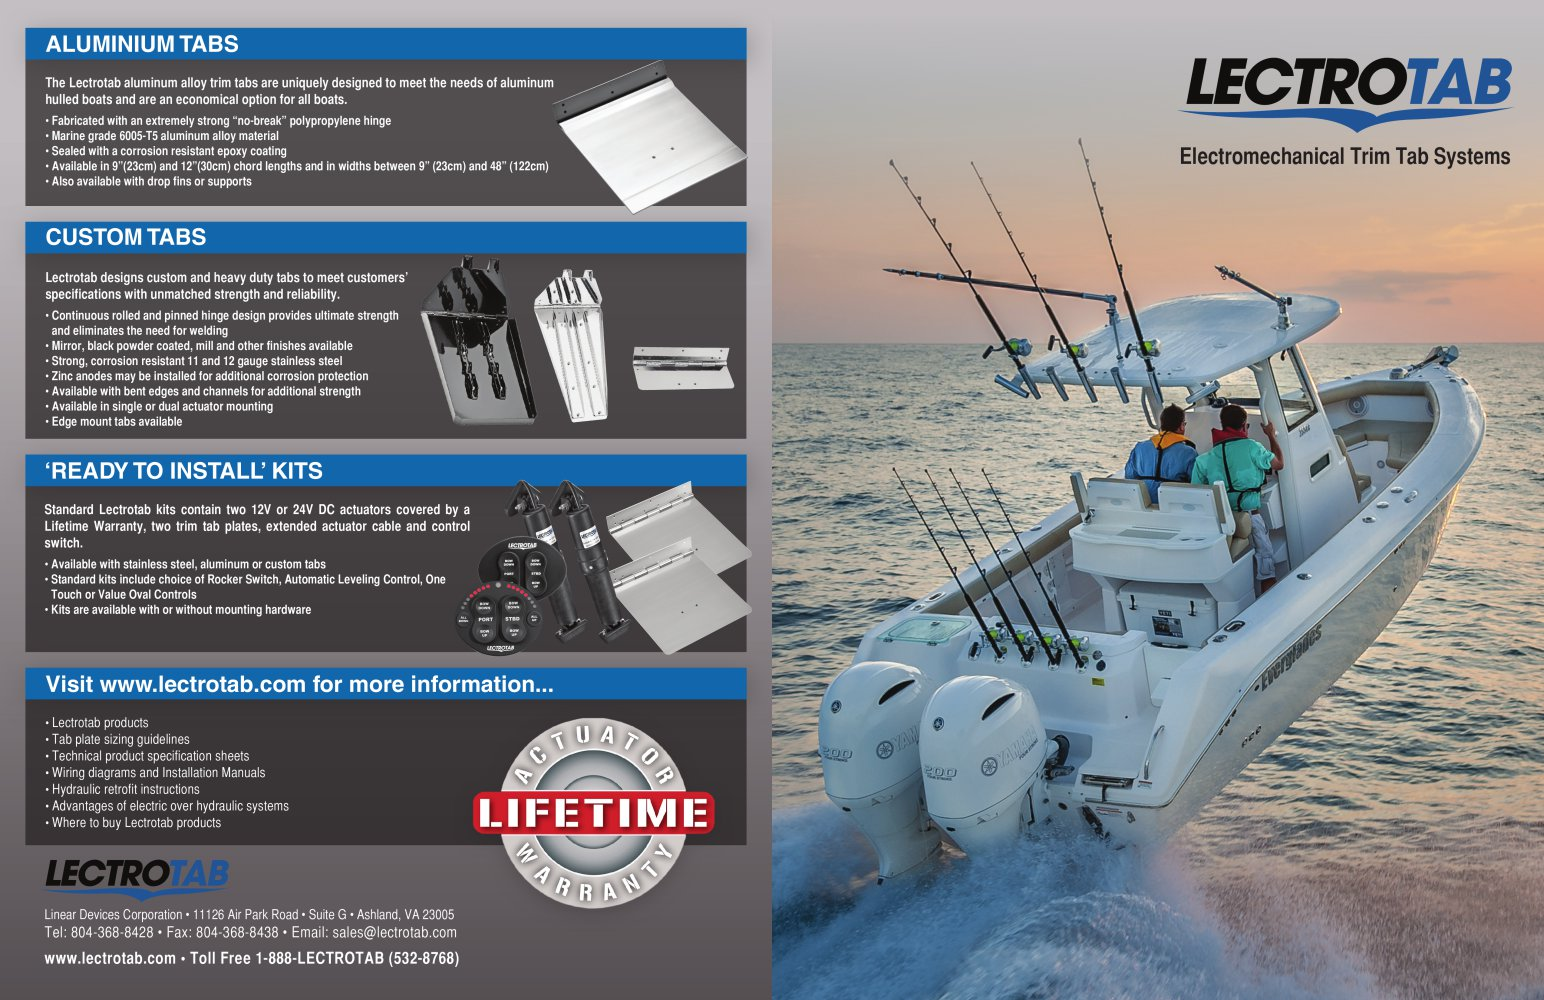 Lectrotab Brochure 2014 Pdf Catalogues Documentation Boat Trim Tabs Wiring Diagram 1 2 Pages